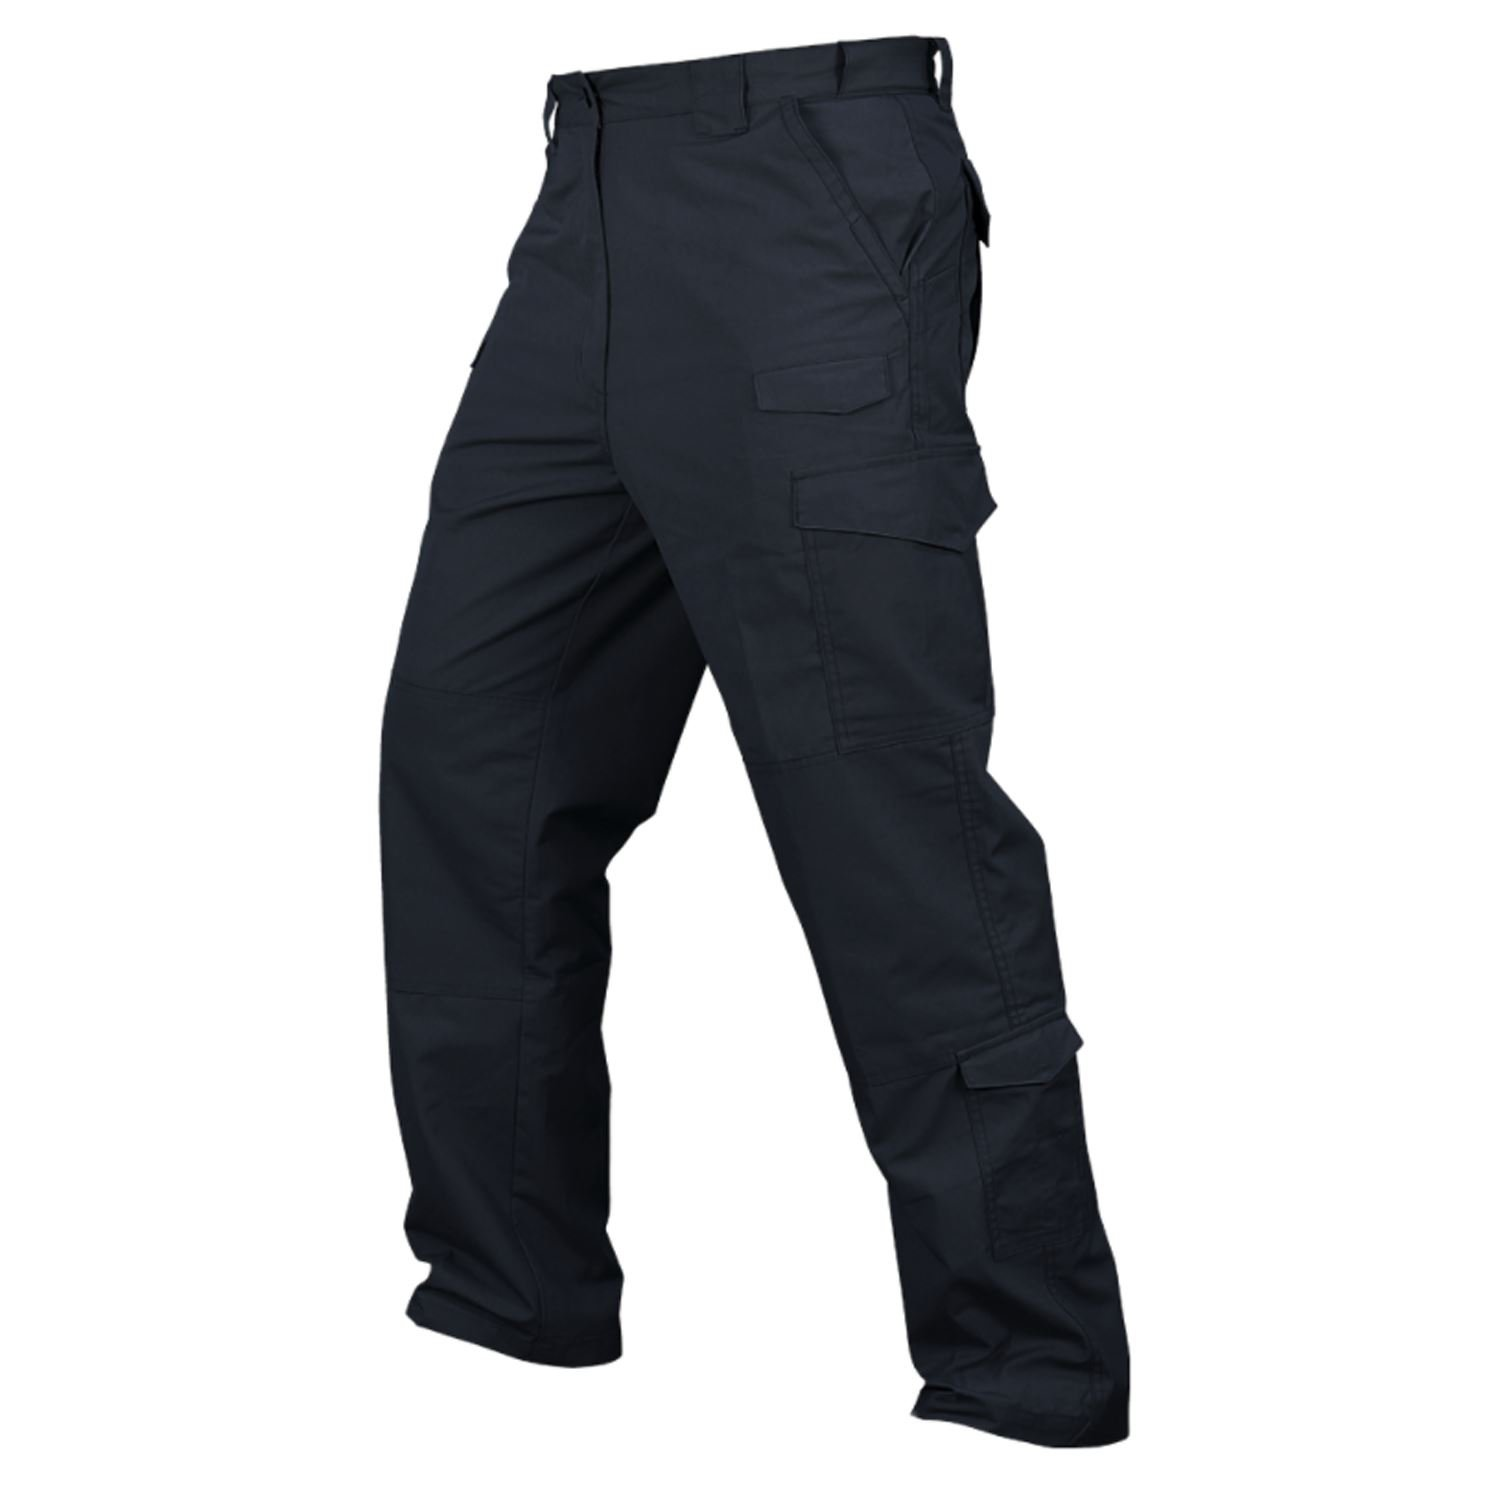 SENTINEL TACTICAL PANTS, NAVY BLUE, 38W X 34L Condor